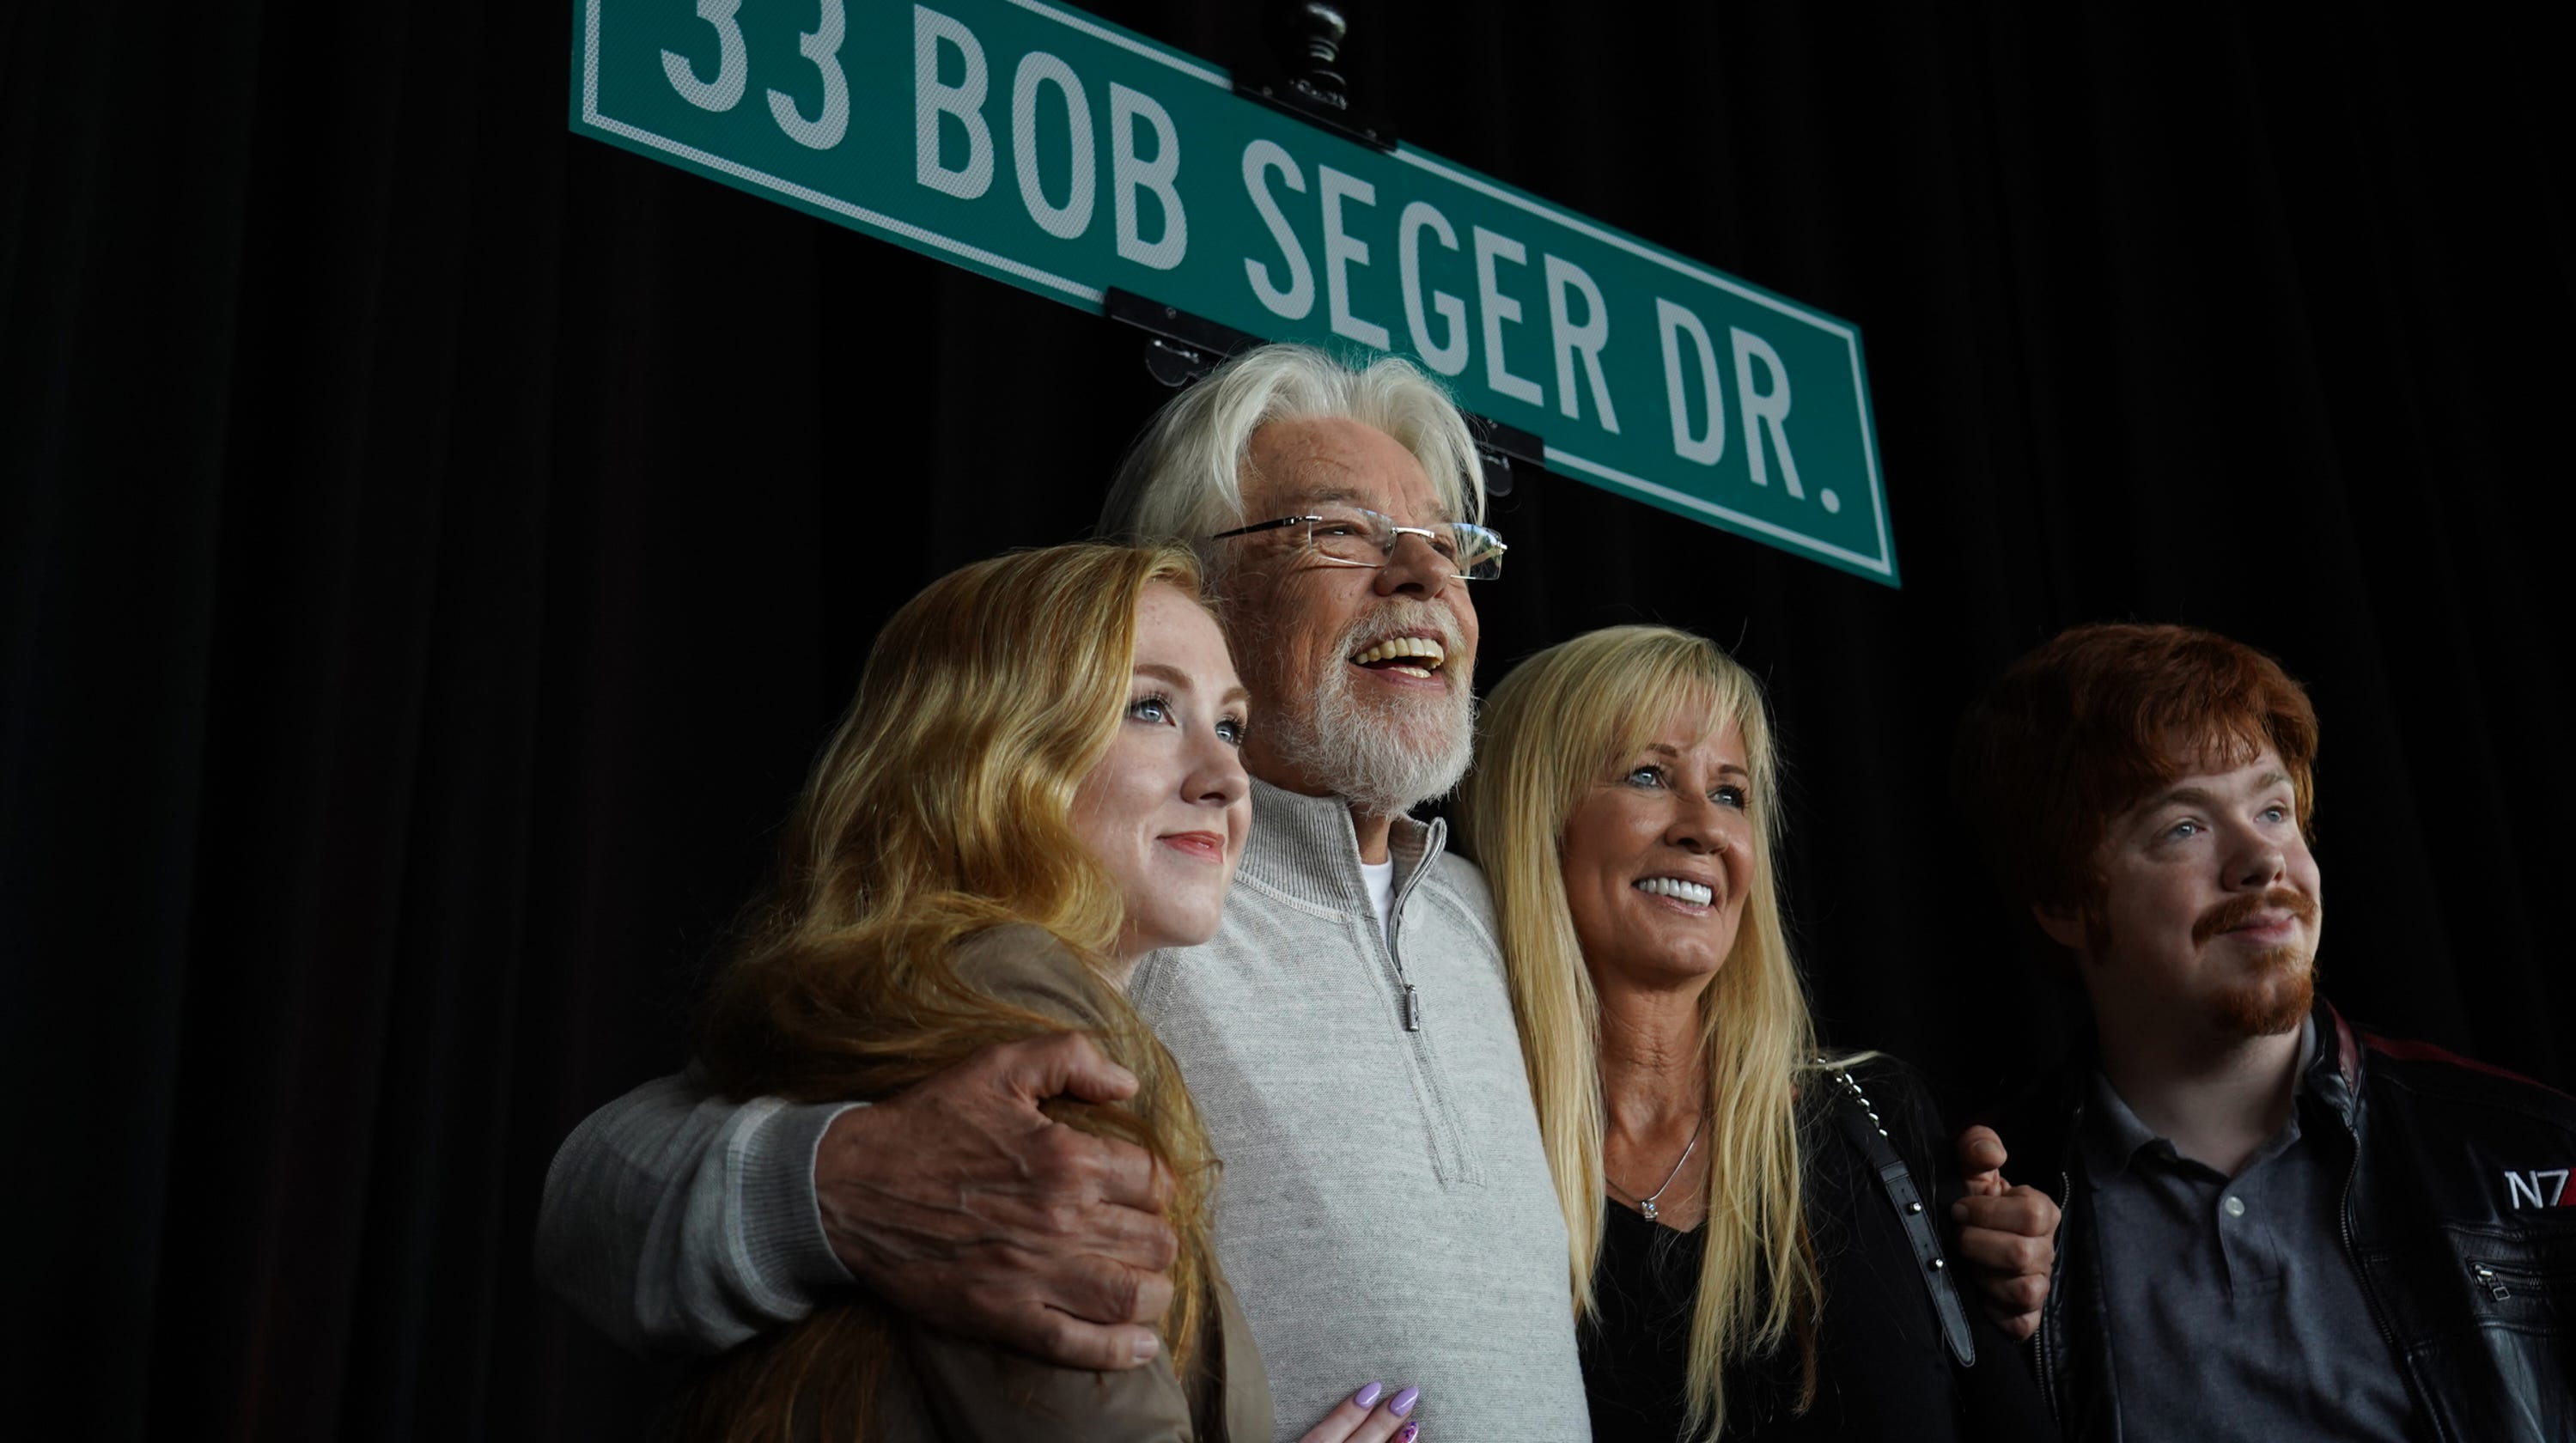 DTE Energy Music Theatre Changes Address To 33 Bob Seger Drive